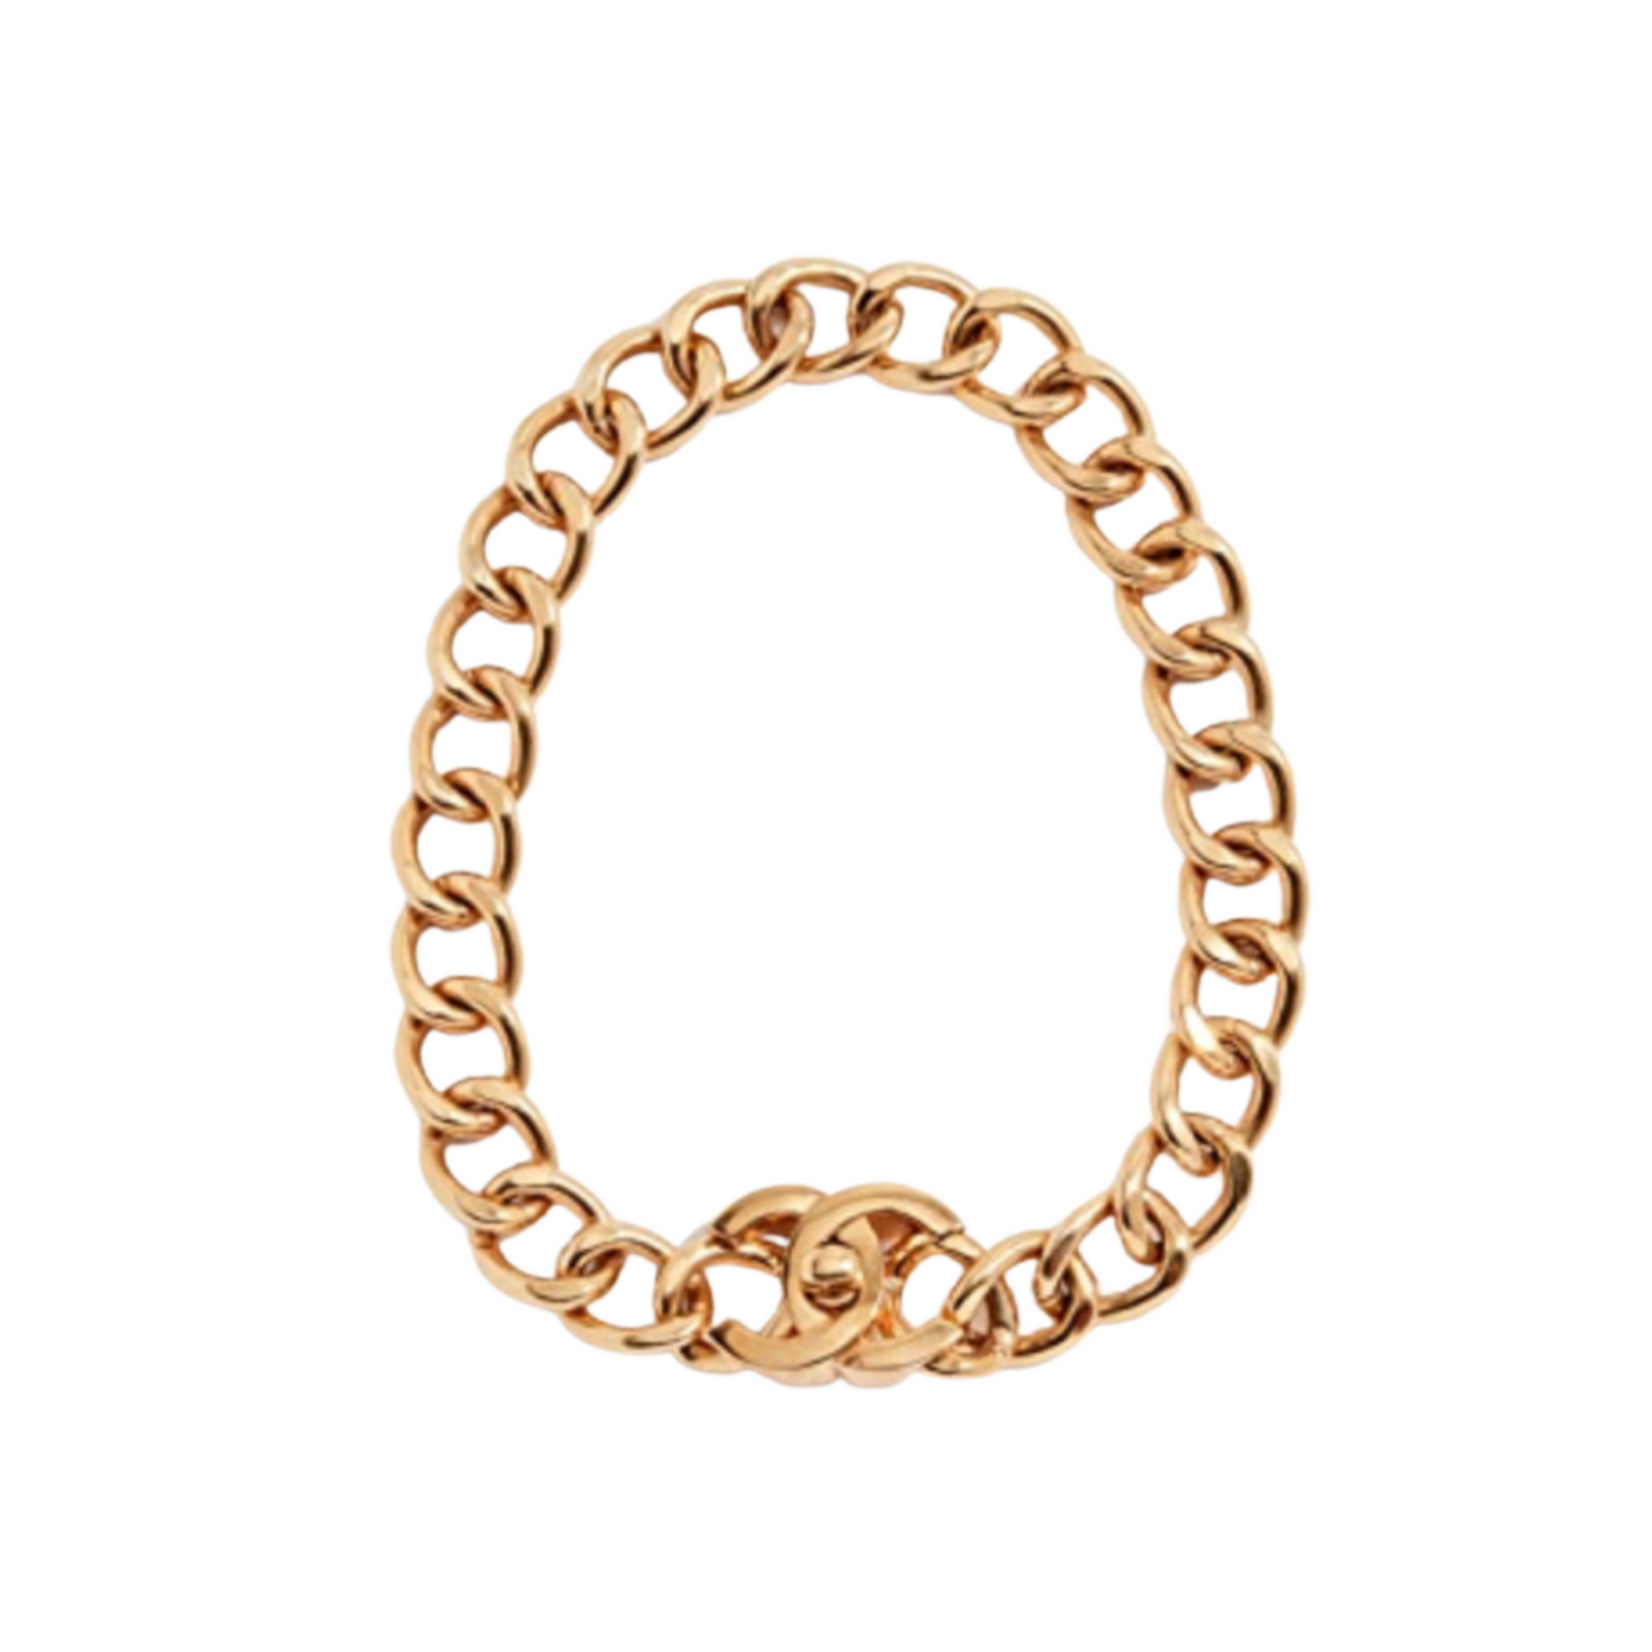 What Goes Around Comes Around Chanel Turnlock Necklace - Gold